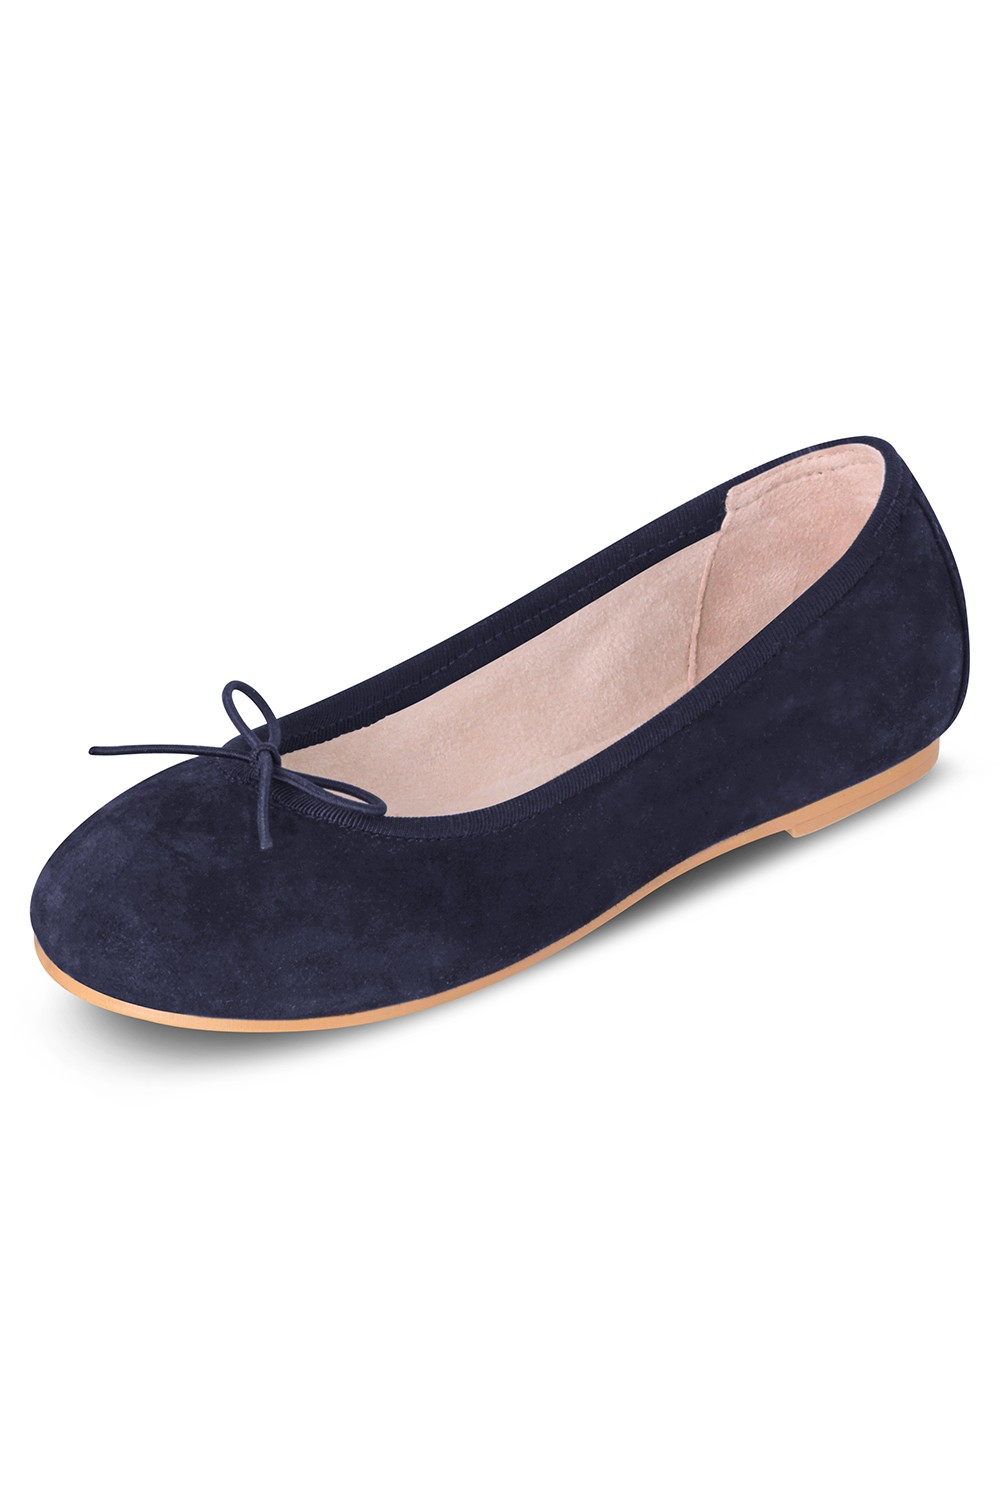 Suede Ballerina Girls Fashion Shoes